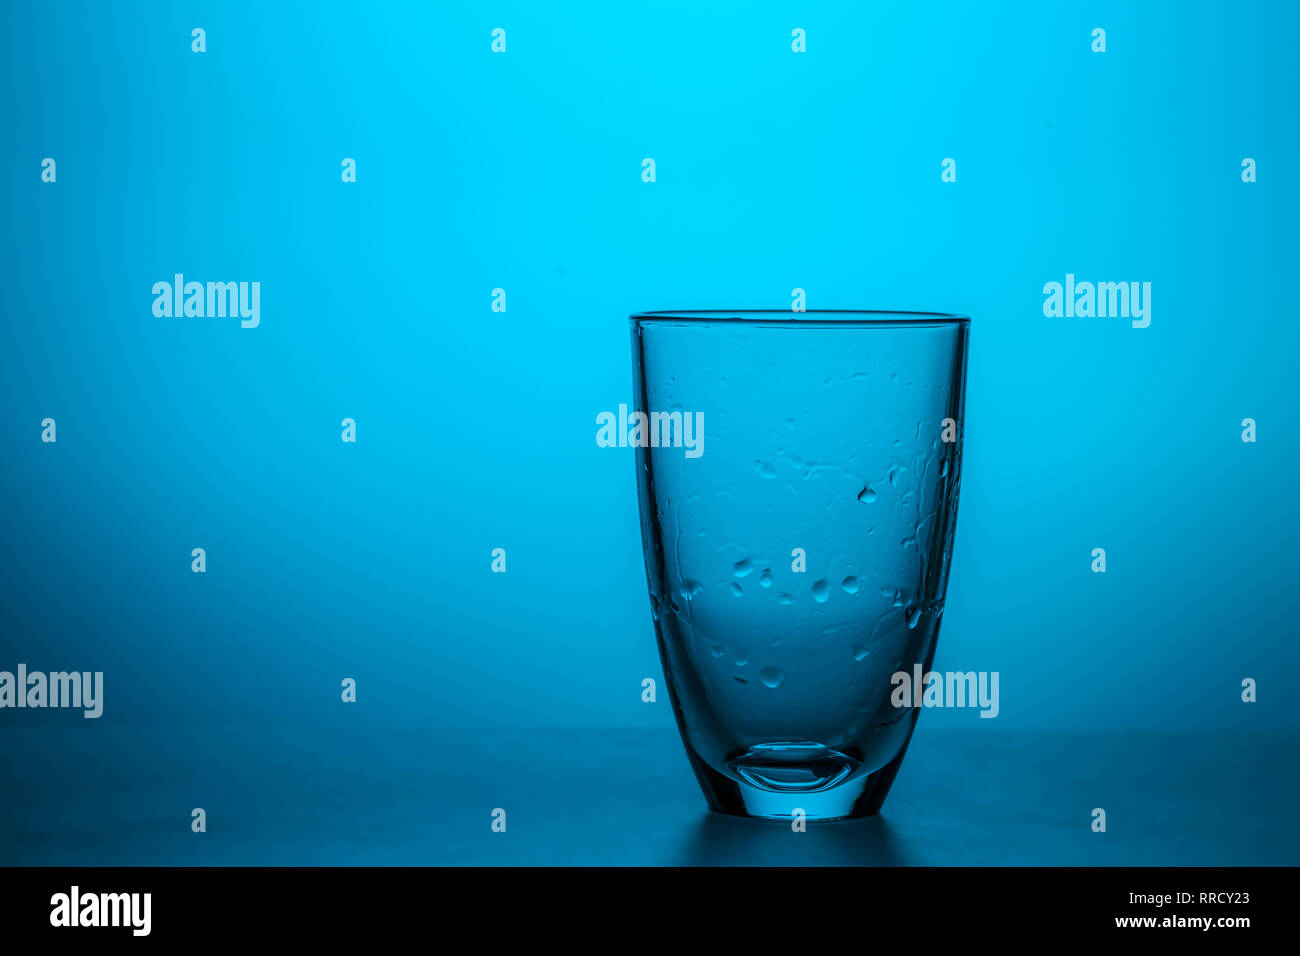 Transparent glass with water drops - Stock Image